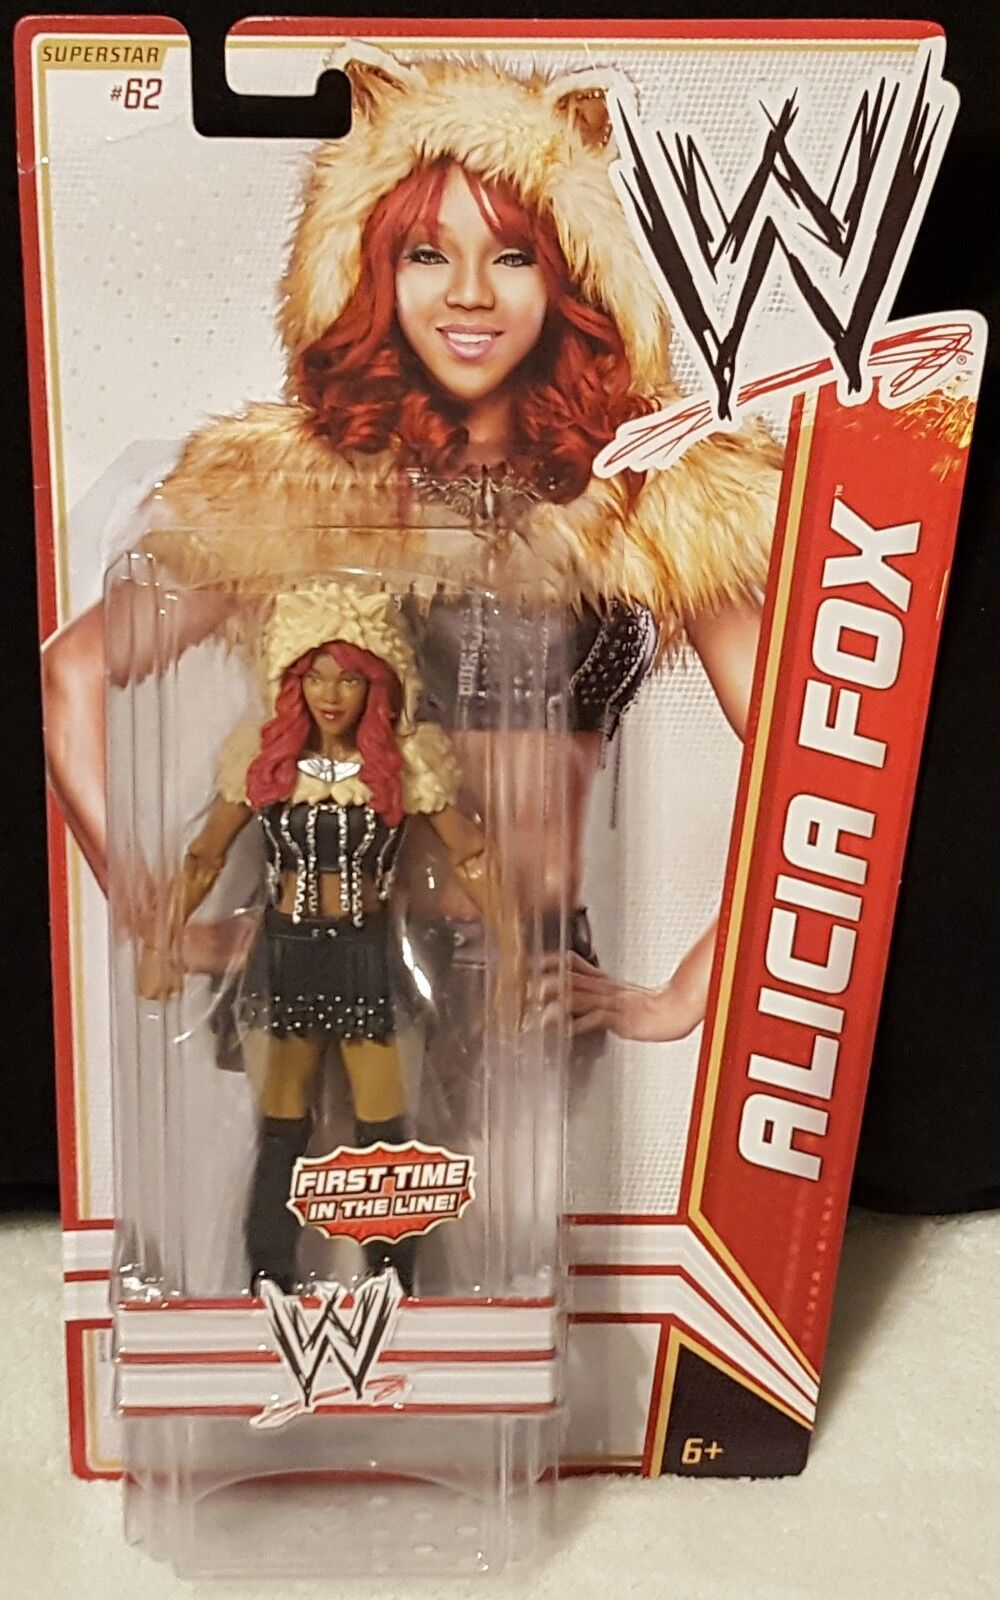 Alicia Fox WWE Diva Basic Series 19 Mattel Figure 2012 First Time In The Line